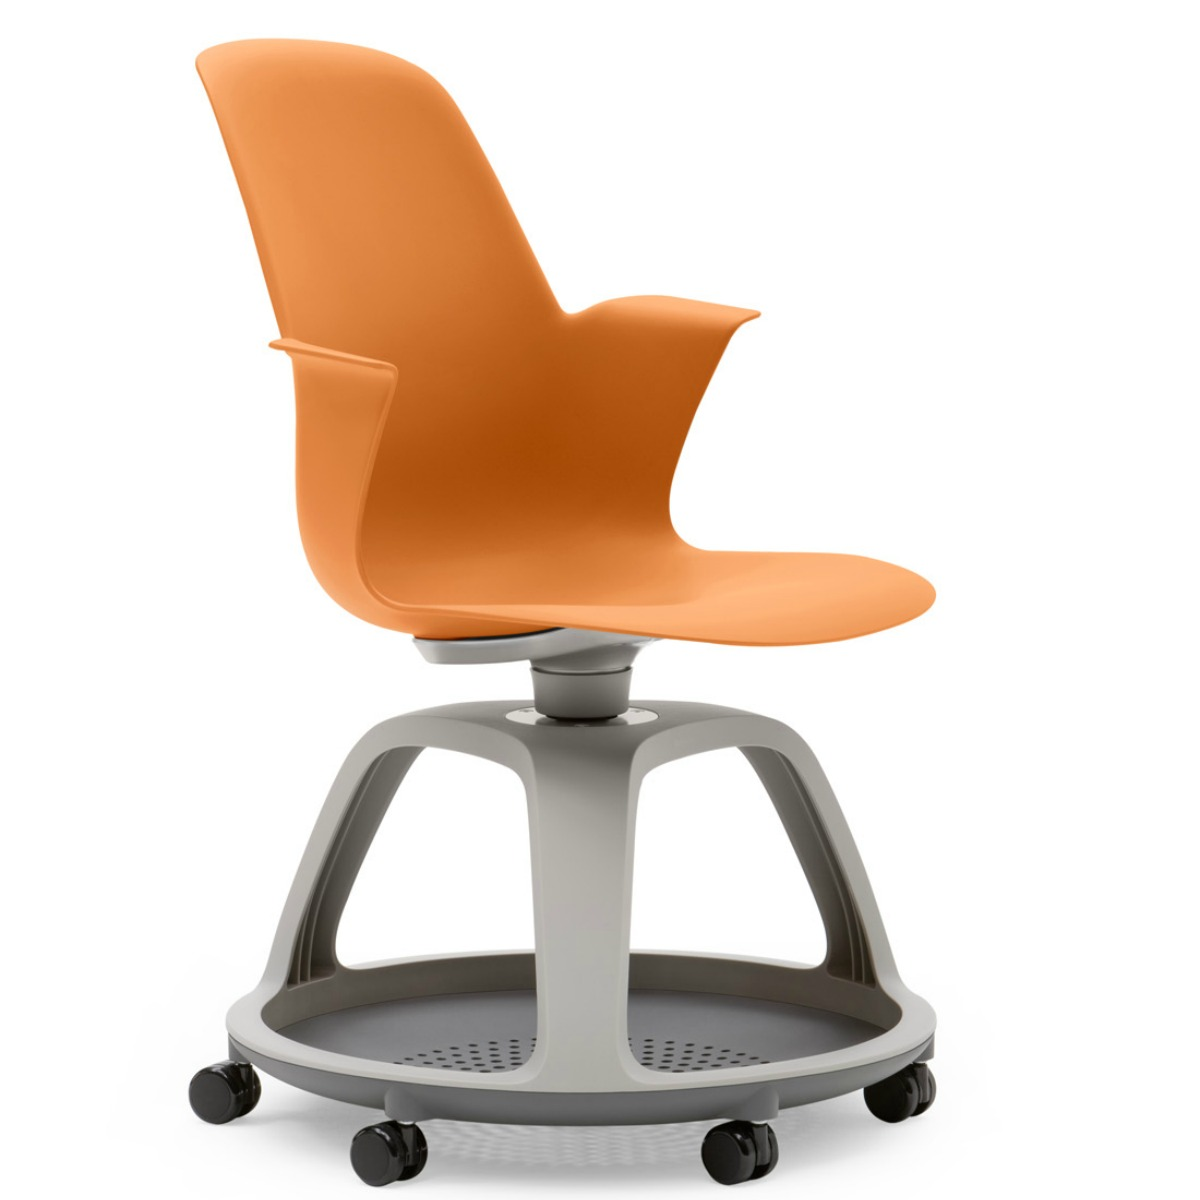 Steelcase node chair shop steelcase node chairs for Steelcase chairs